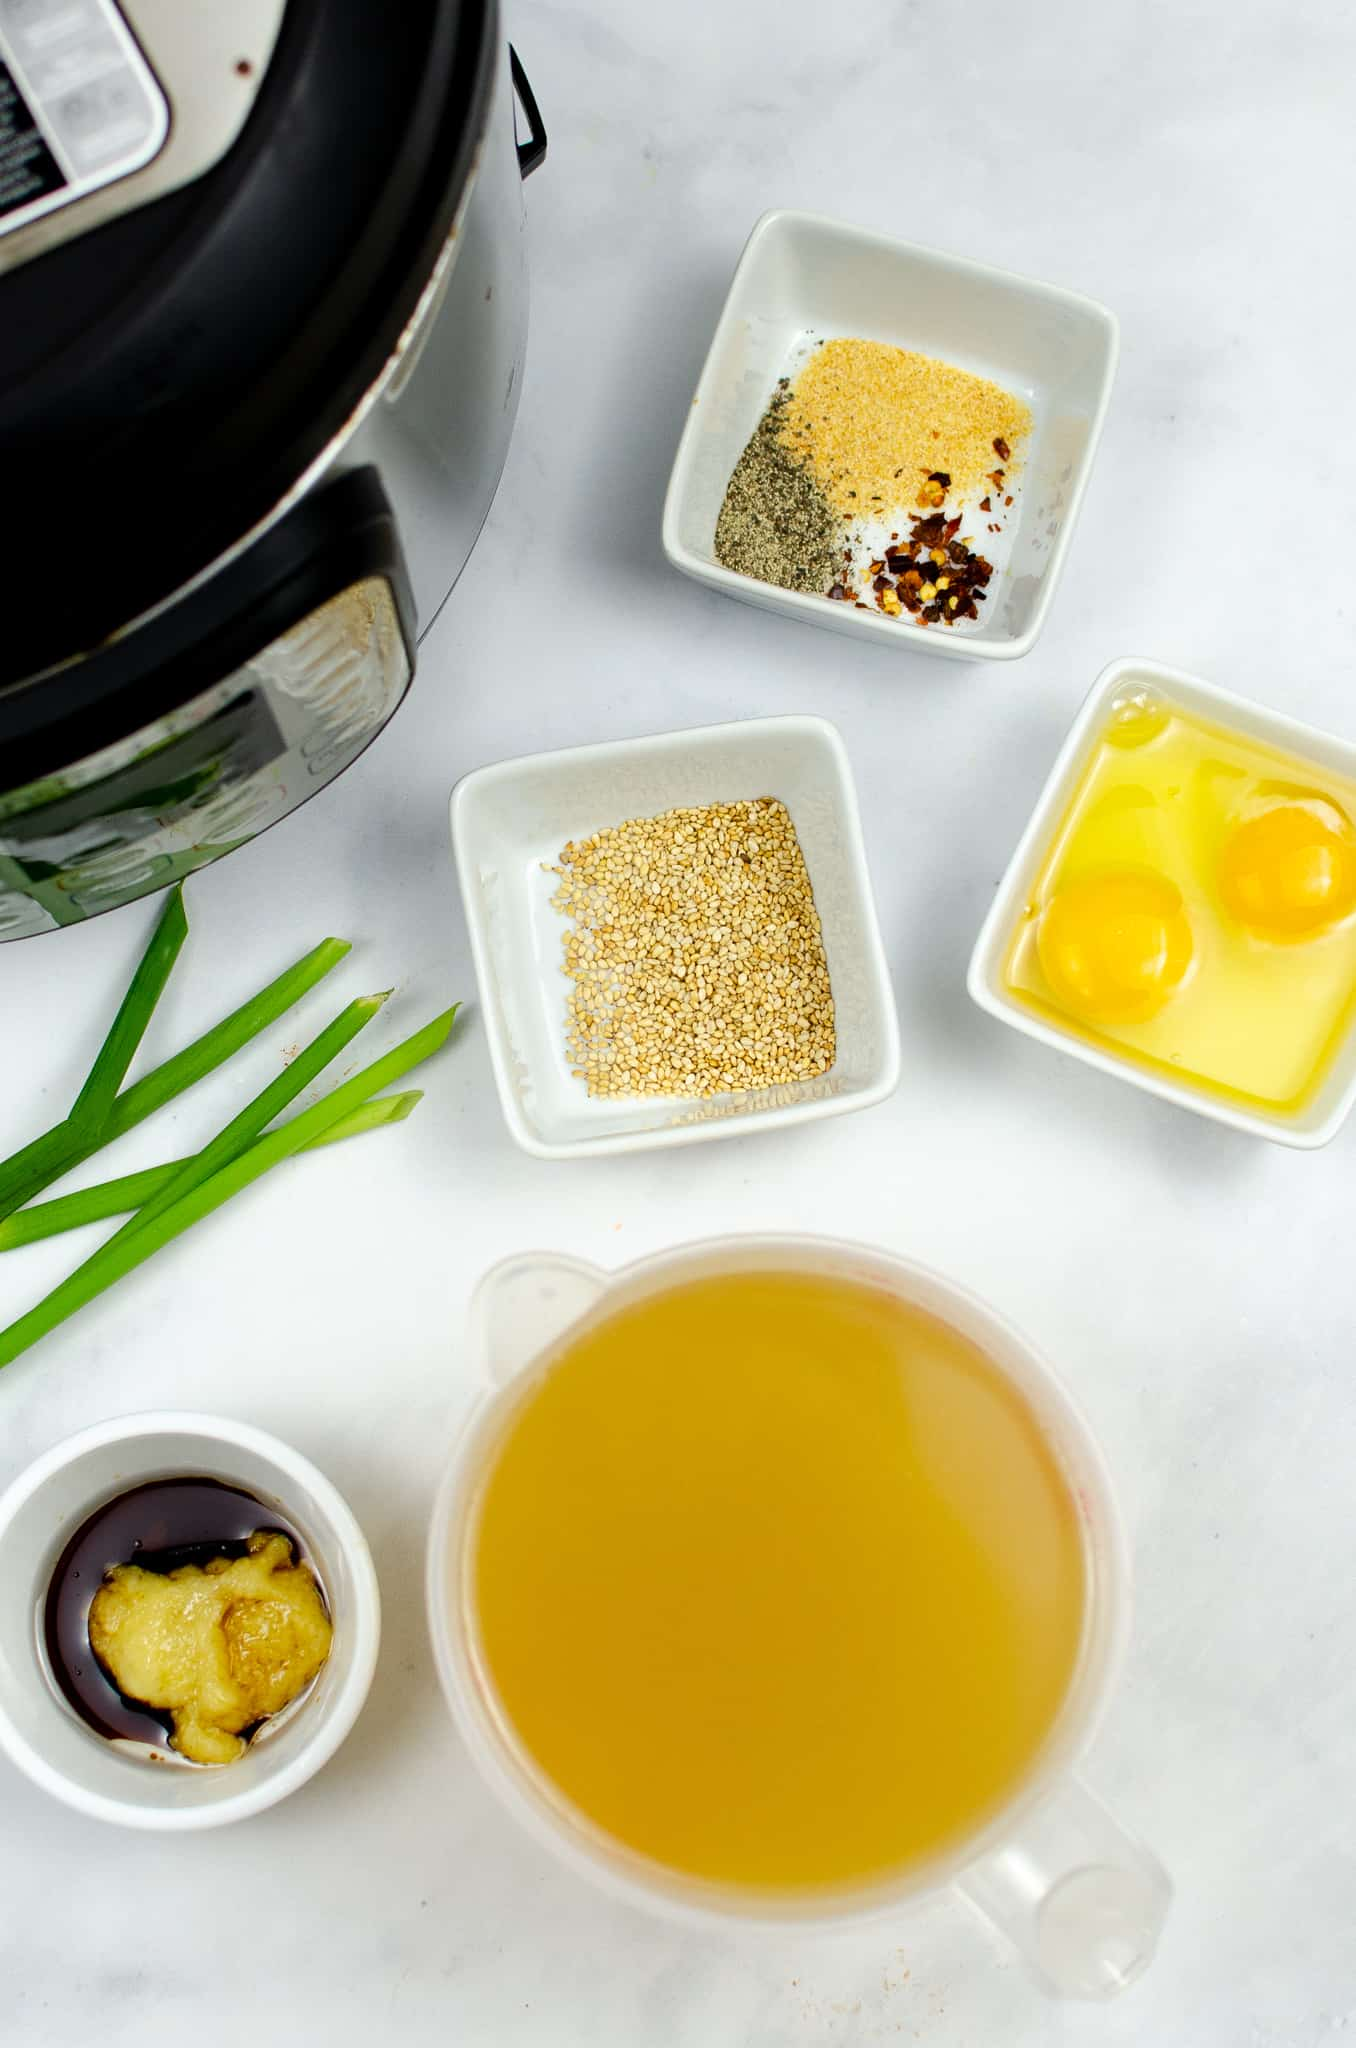 ingredients for Instant Pot keto egg drop soup in ingredient bowls on white background